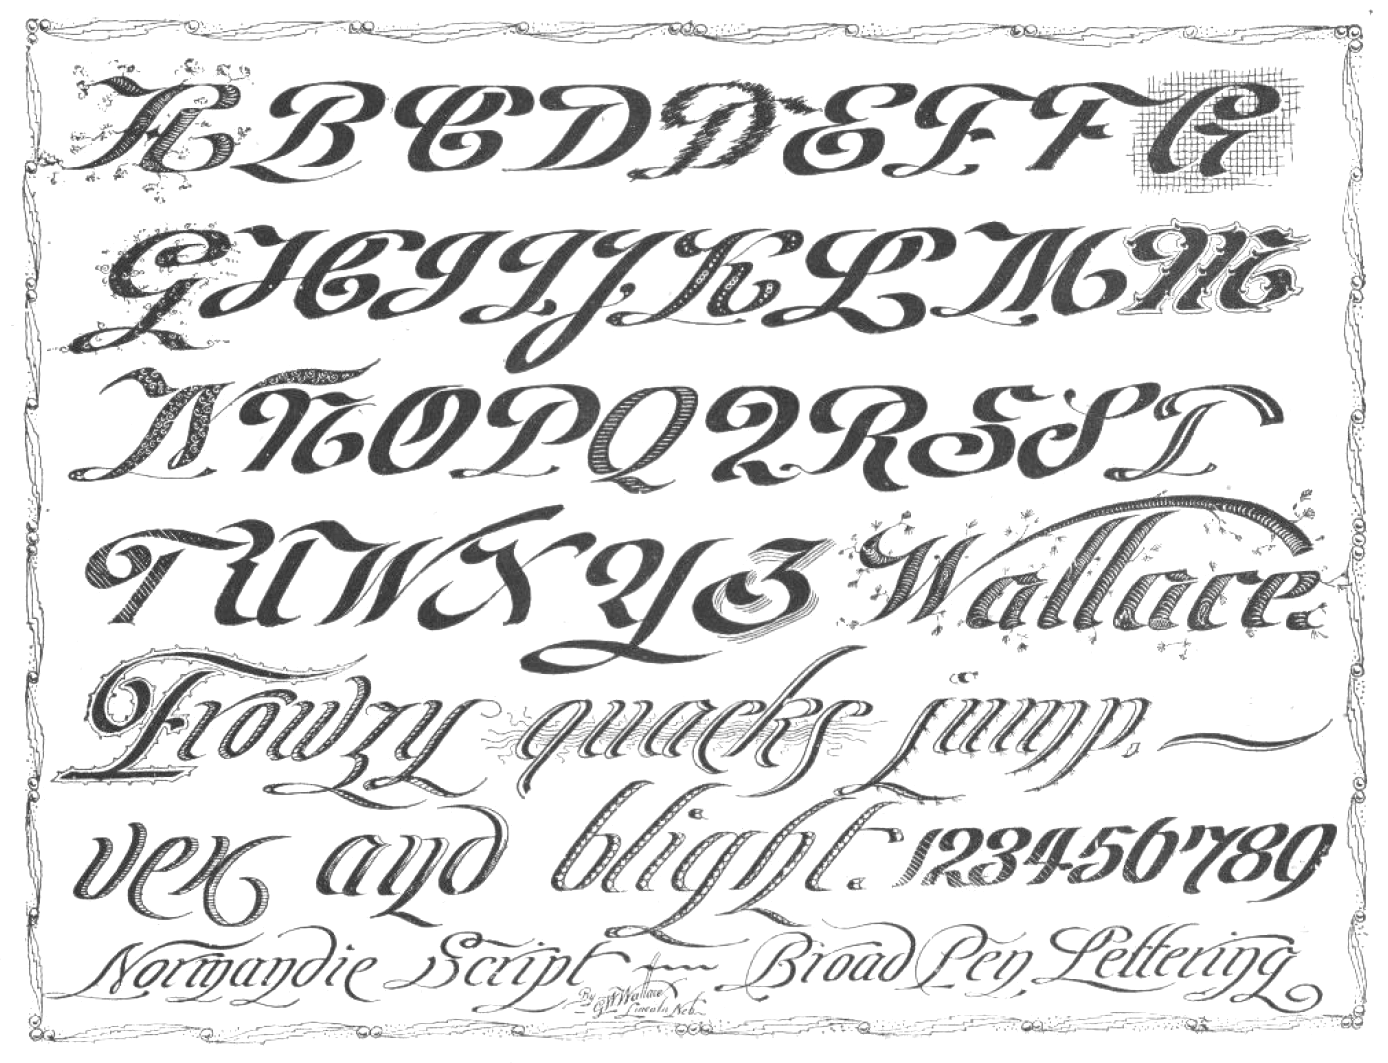 Spoodawgmusic french calligraphy alphabet Calligraphy text